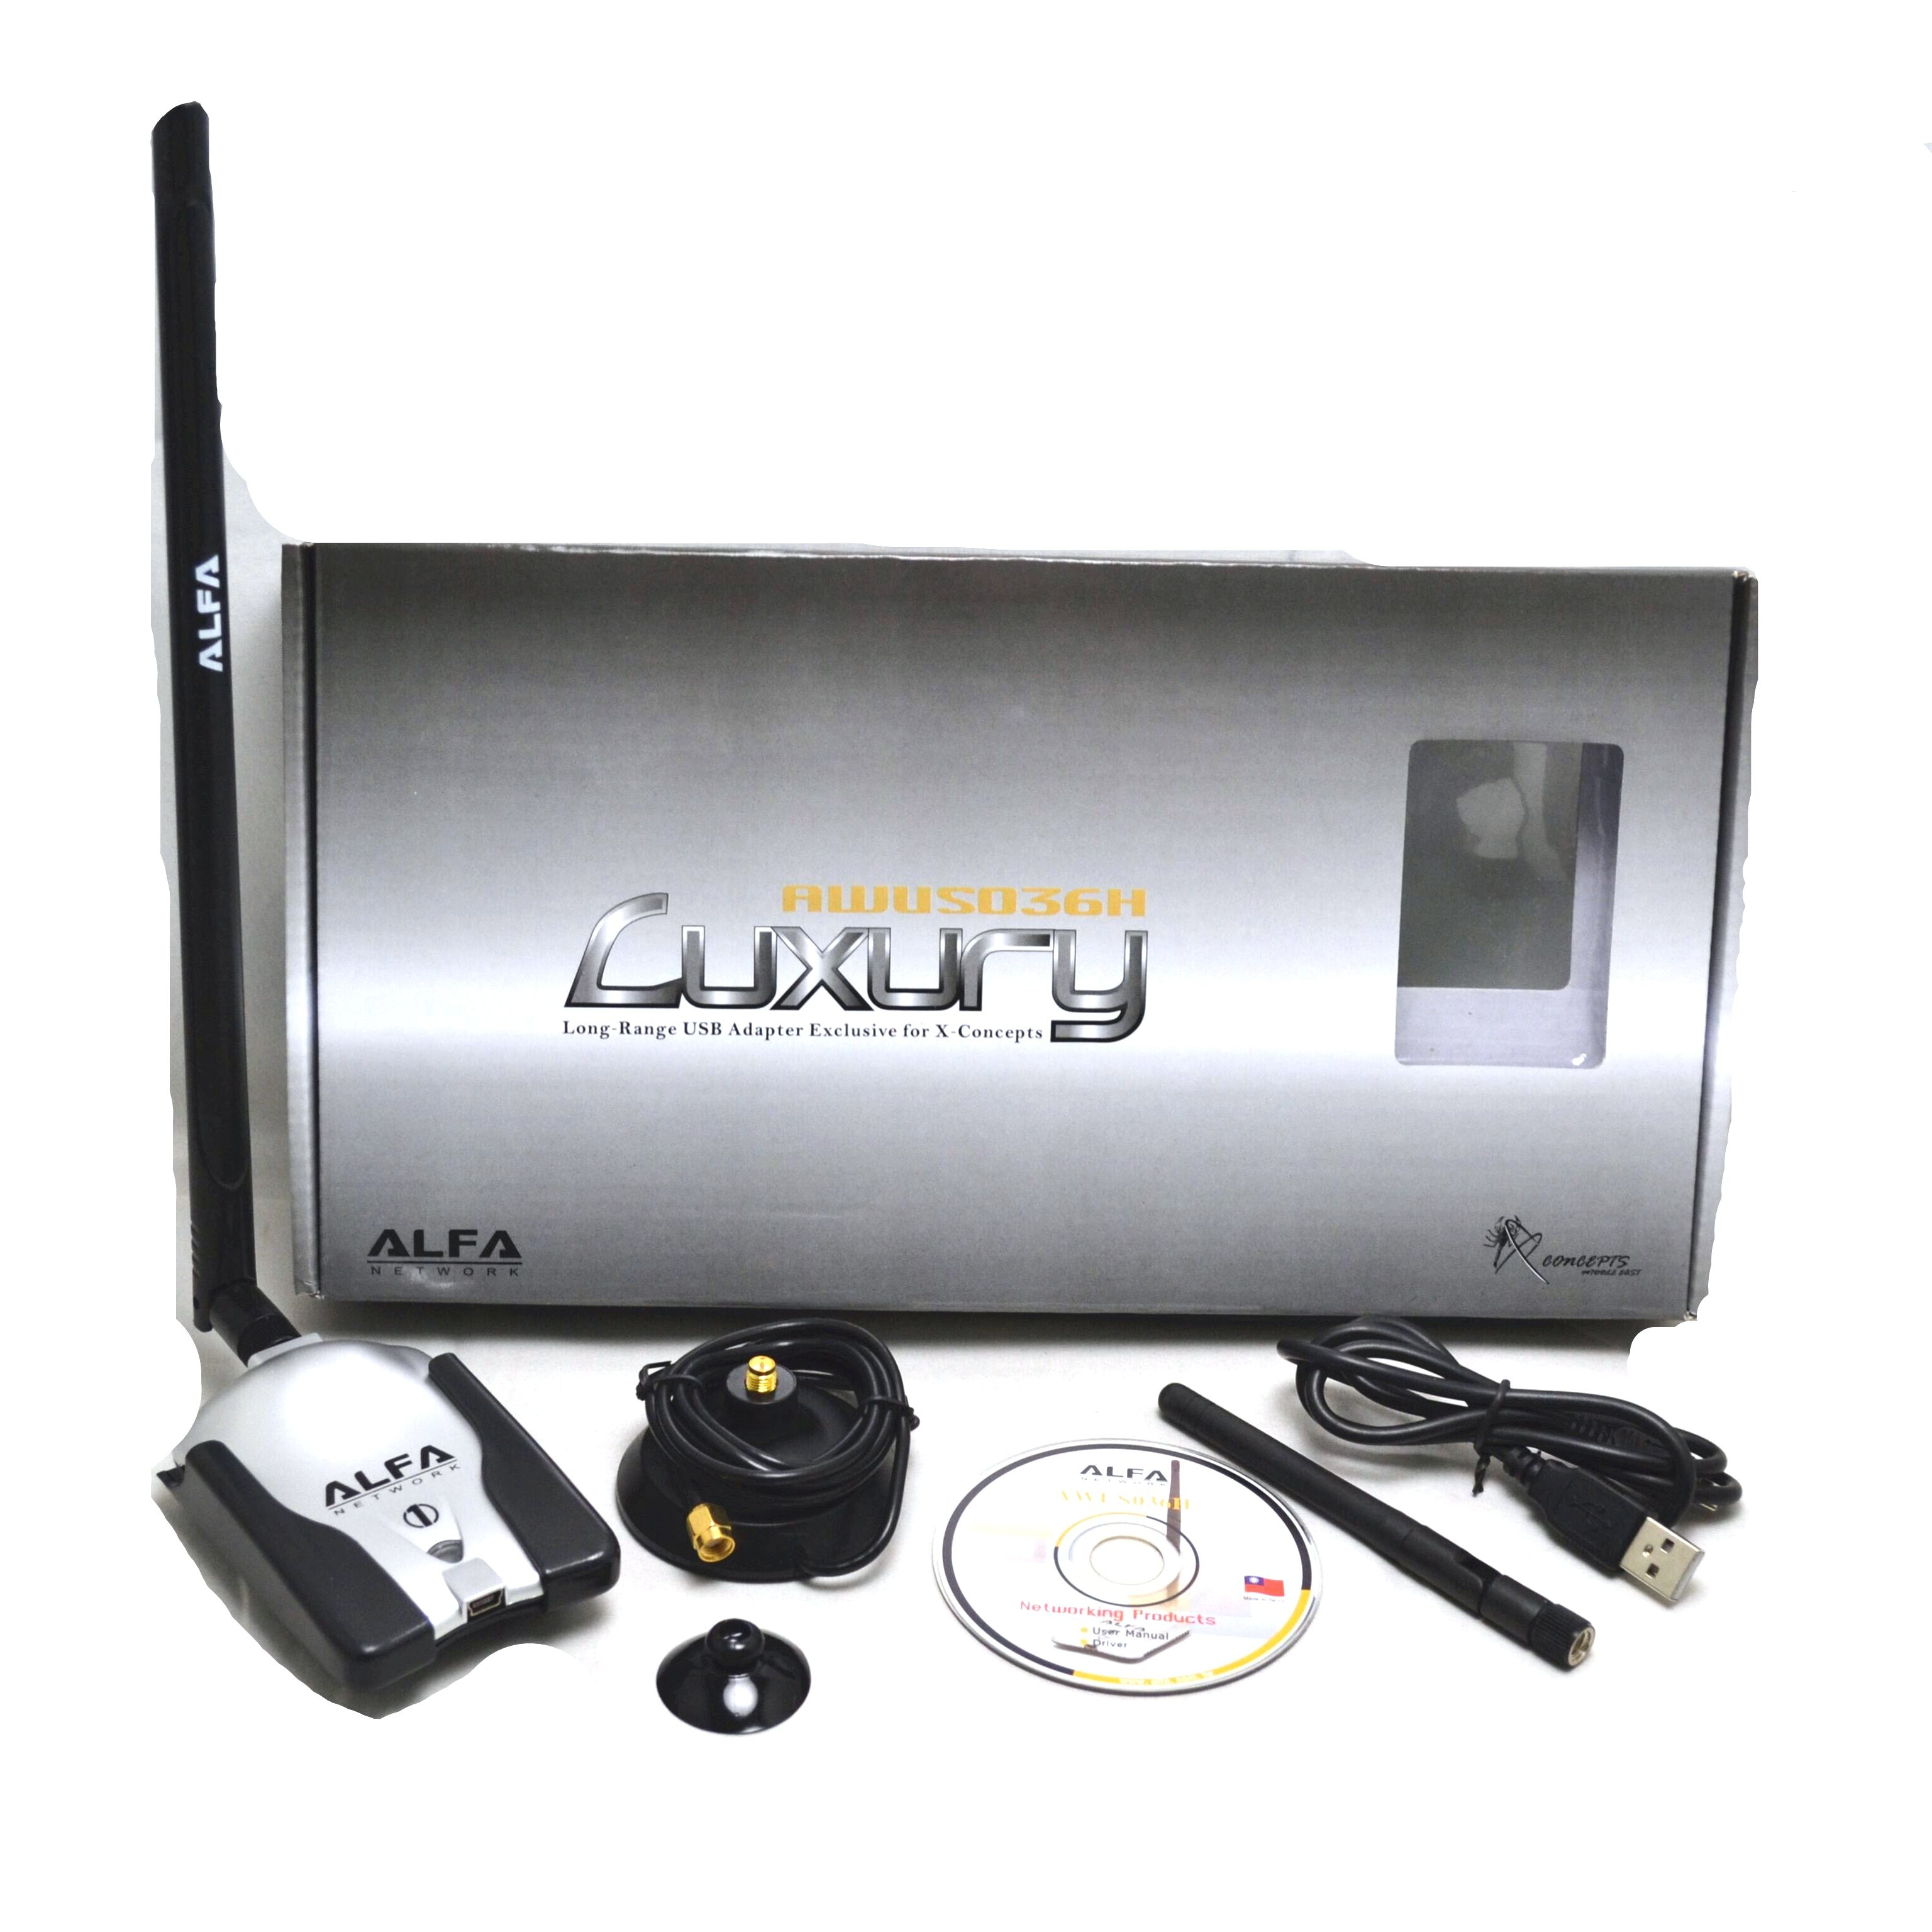 Alfa AWUS036NH Wireless USB Wifi Adapter 150Mbps Luxury With 8dBi+2dBi Antennas High Power RT3070L